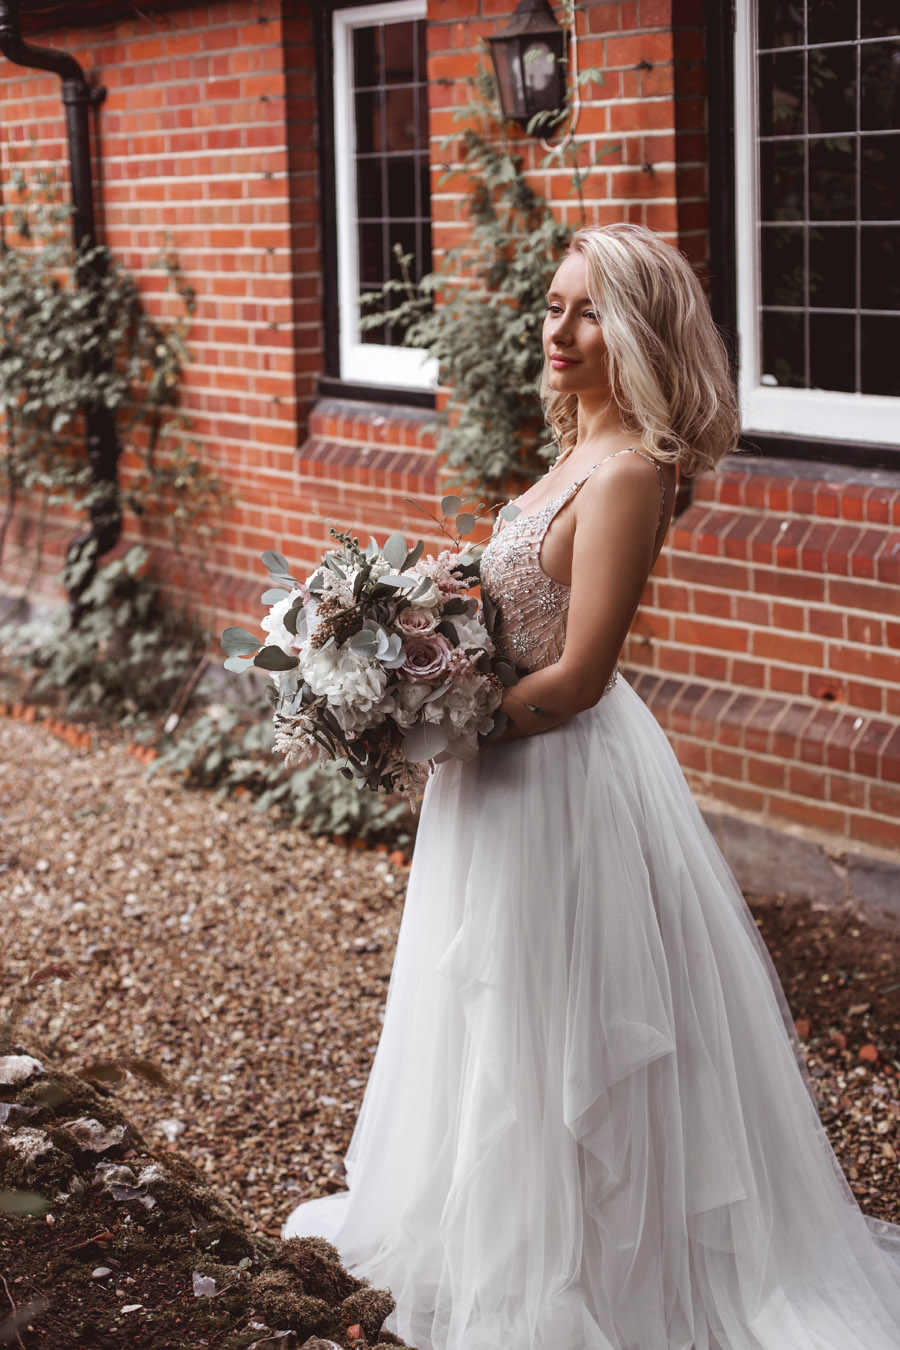 Ye Olde Bell Coaching Inn for a faded beauty wedding style edit with Masha Unwerth (17)